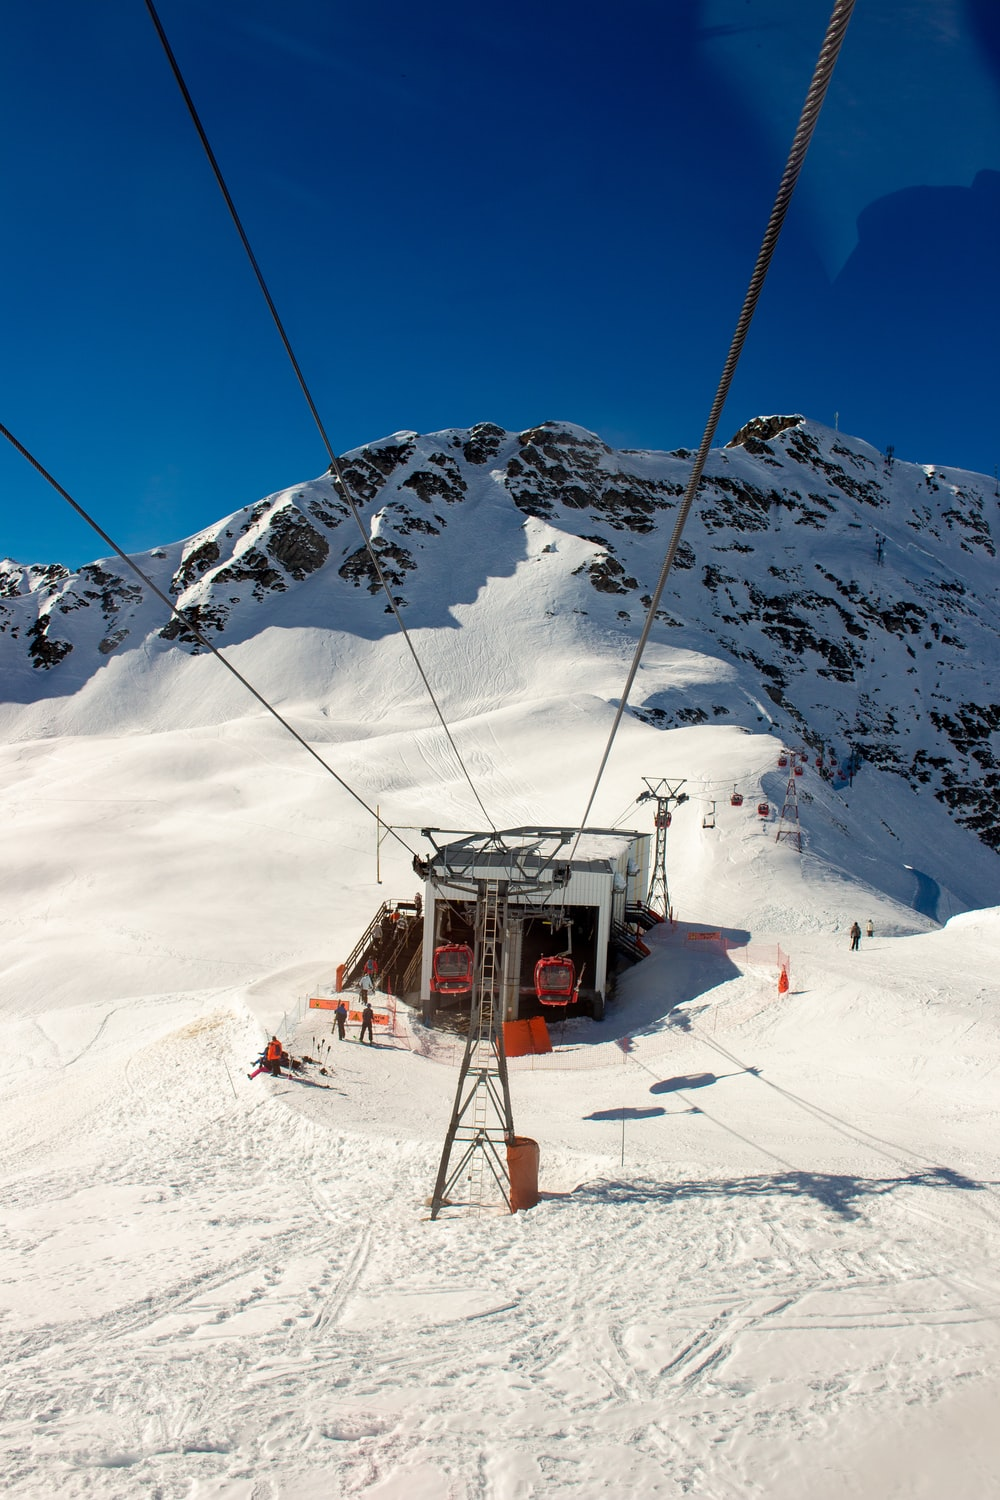 cable car in a snowy mountain under a calm blue sky during daytime